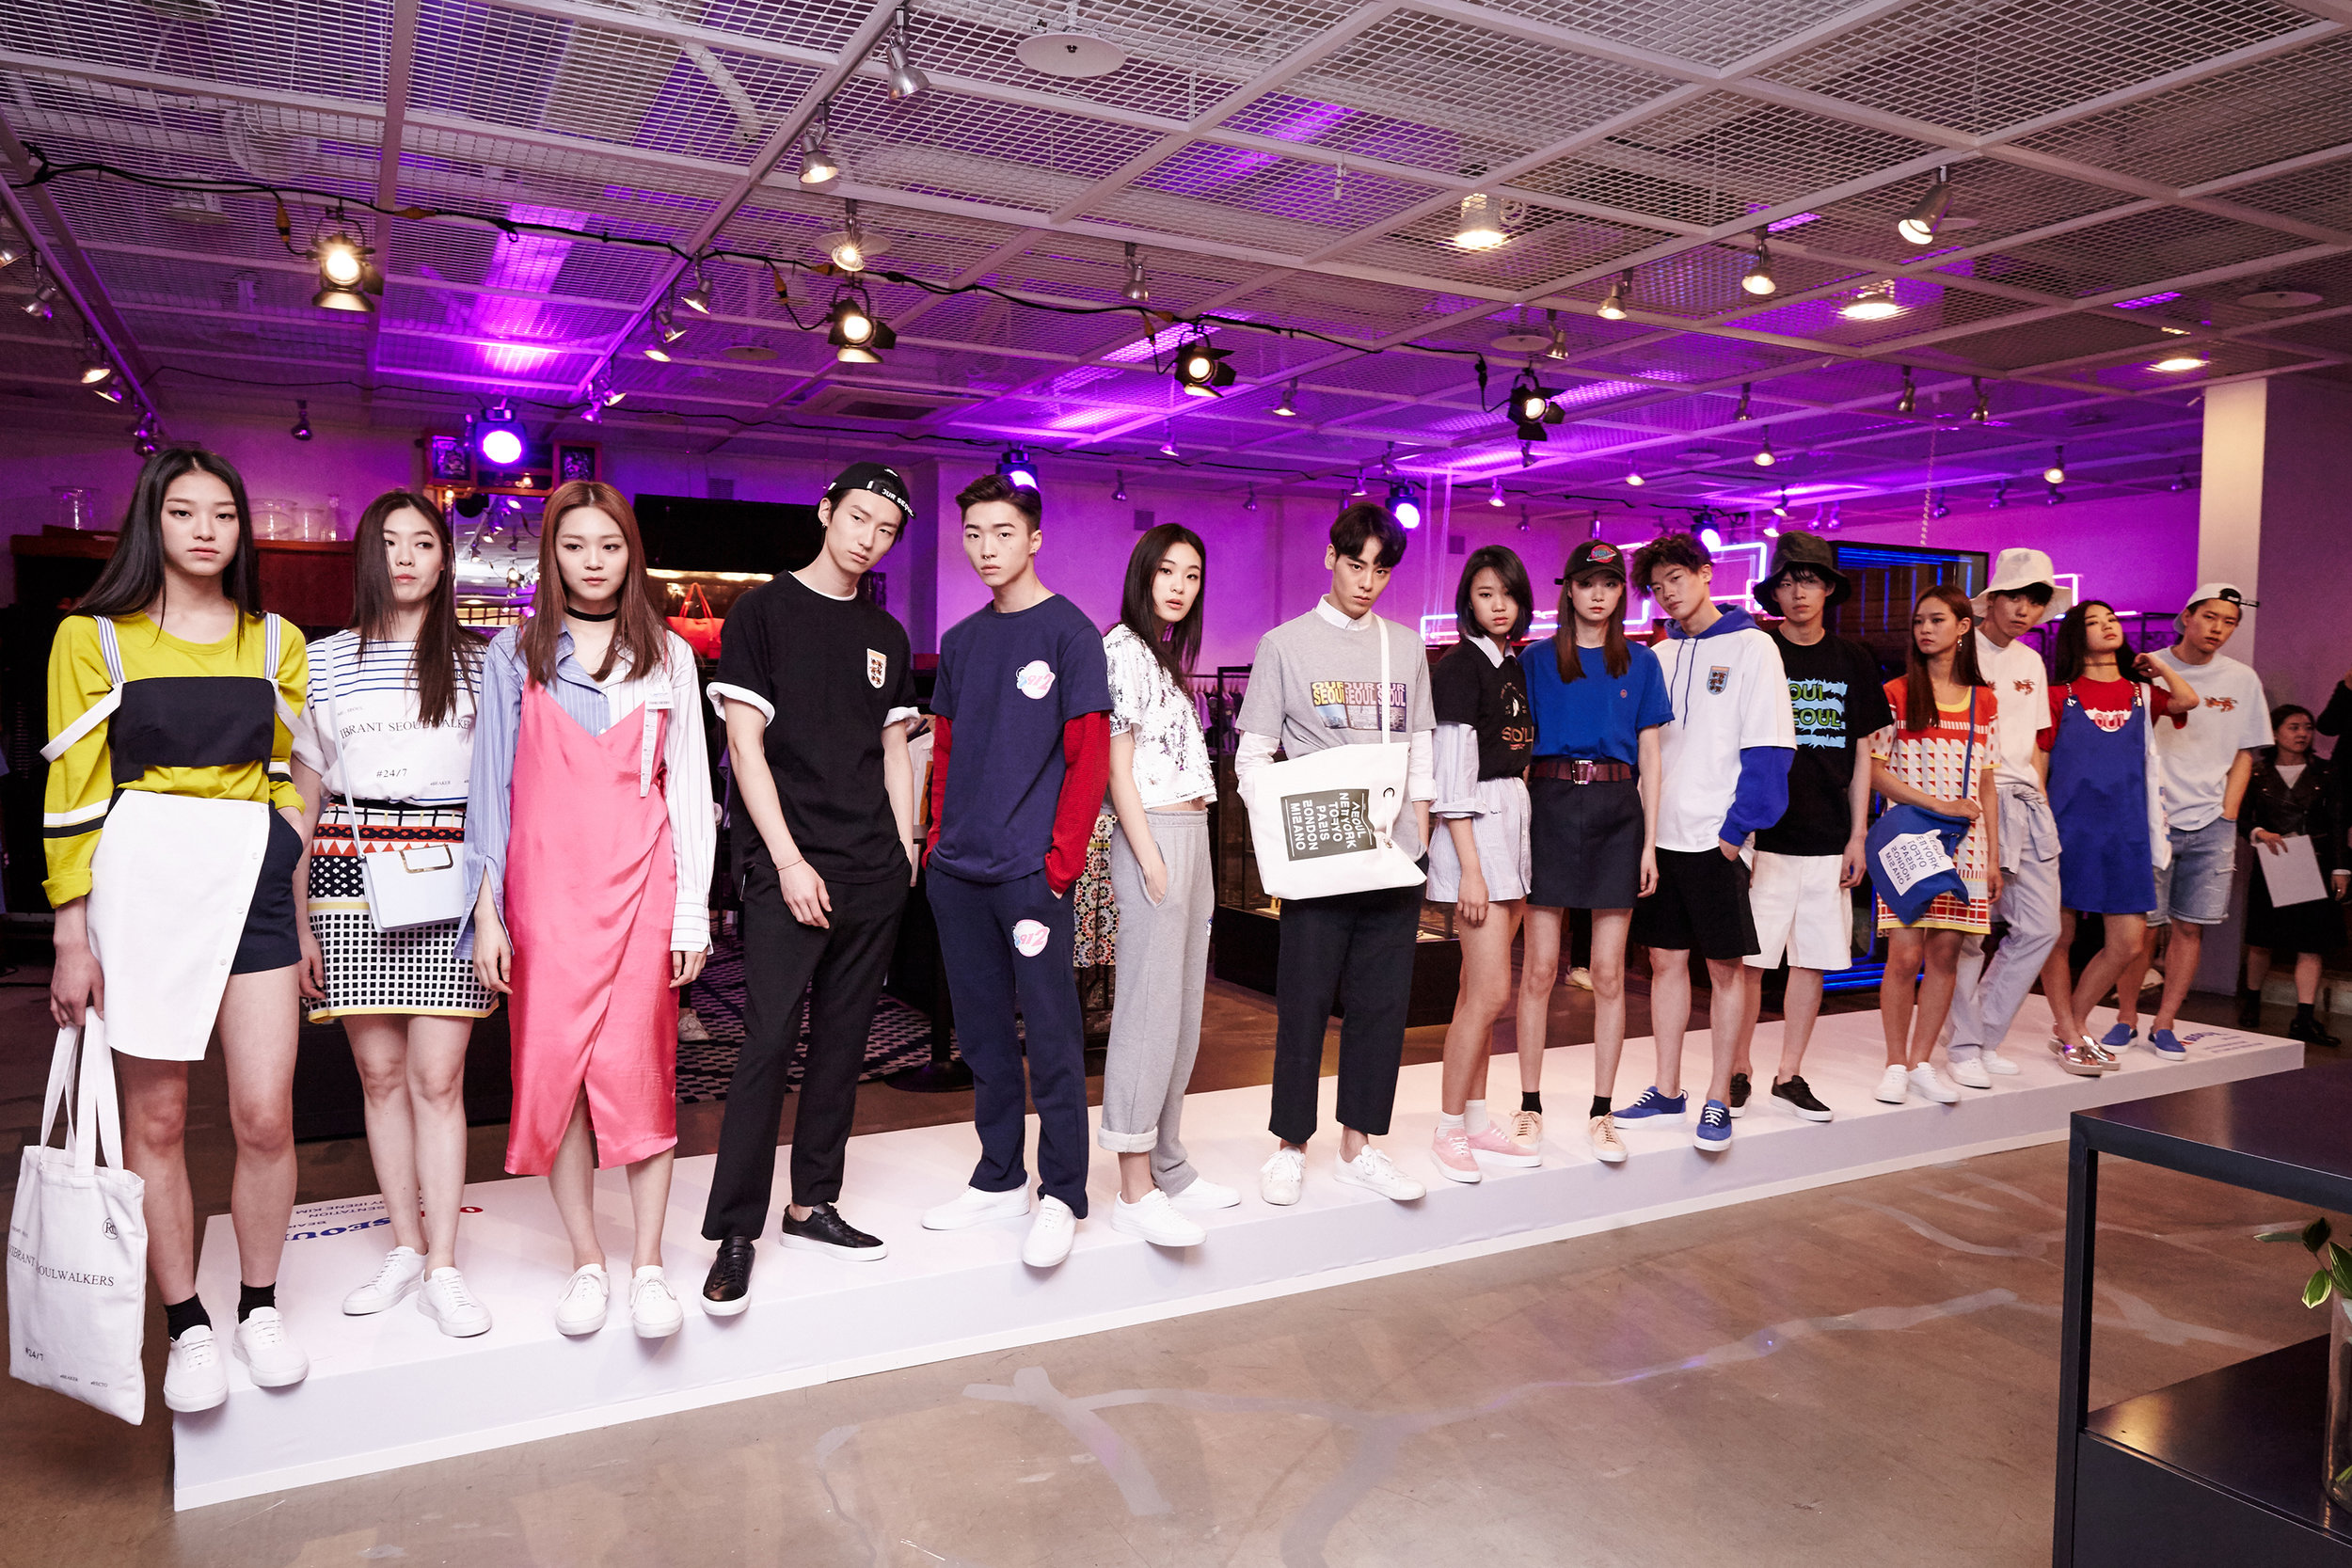 Mini catwalk with models styled by the Korean designers